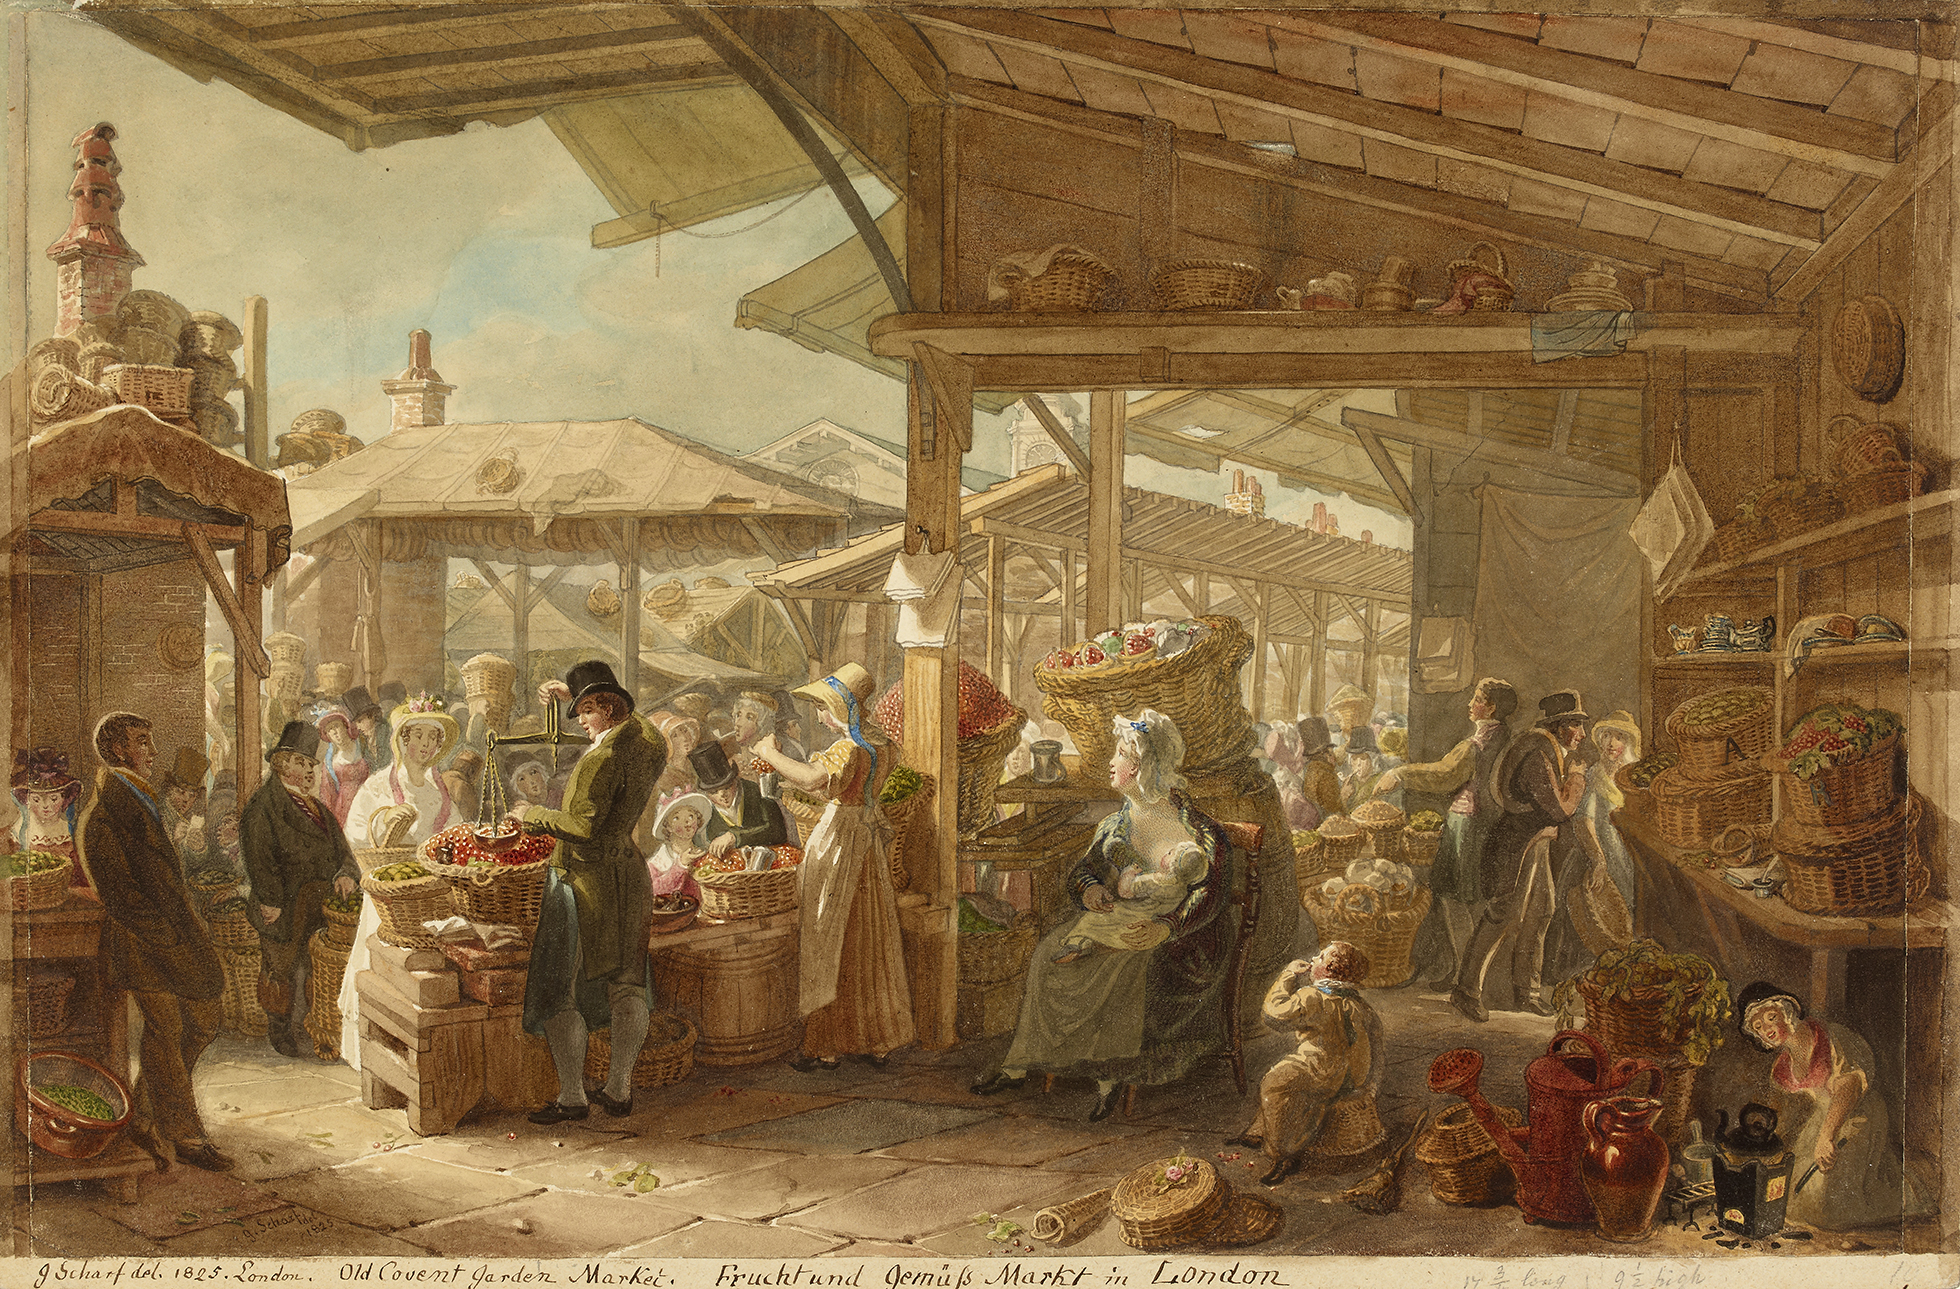 A view of Old Covent Garden from beneath the tiled roof of a stall. The stall is stacked with baskets of fruit – there is a man with a pair of scales, a woman nursing a baby, and another kneeling over a stove. In the background there are further timber-framed stalls and crowds of people.